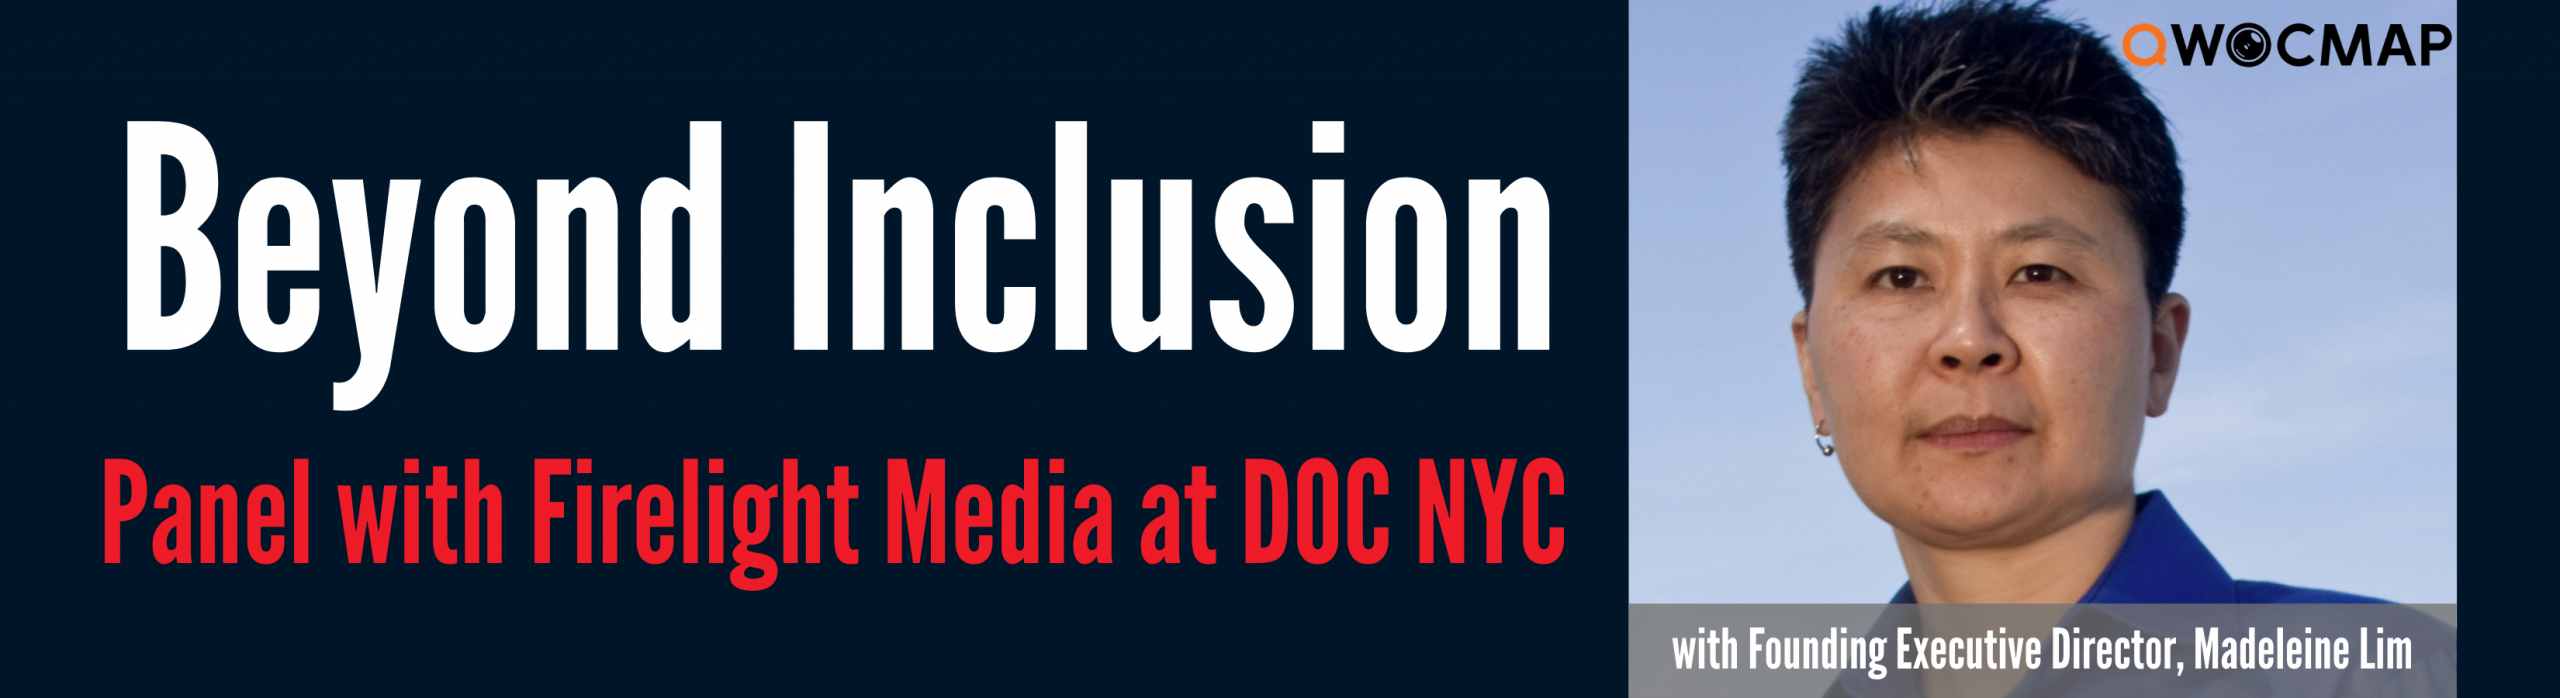 On a dark navy background, white and red text reads Beyond Inclusion Panel with Firelight Media at DOC NYC. On the right is a headshot of an Asian person with light brown skin, short black and gray hair, and brown eyes, wearing a bright blue collared shirt and one earring. On the photo, the QWOCMAP logo is in the top right corner and the caption, which is white text on a gray transparent background, reads With Founding Executive Director Madeleine Lim.